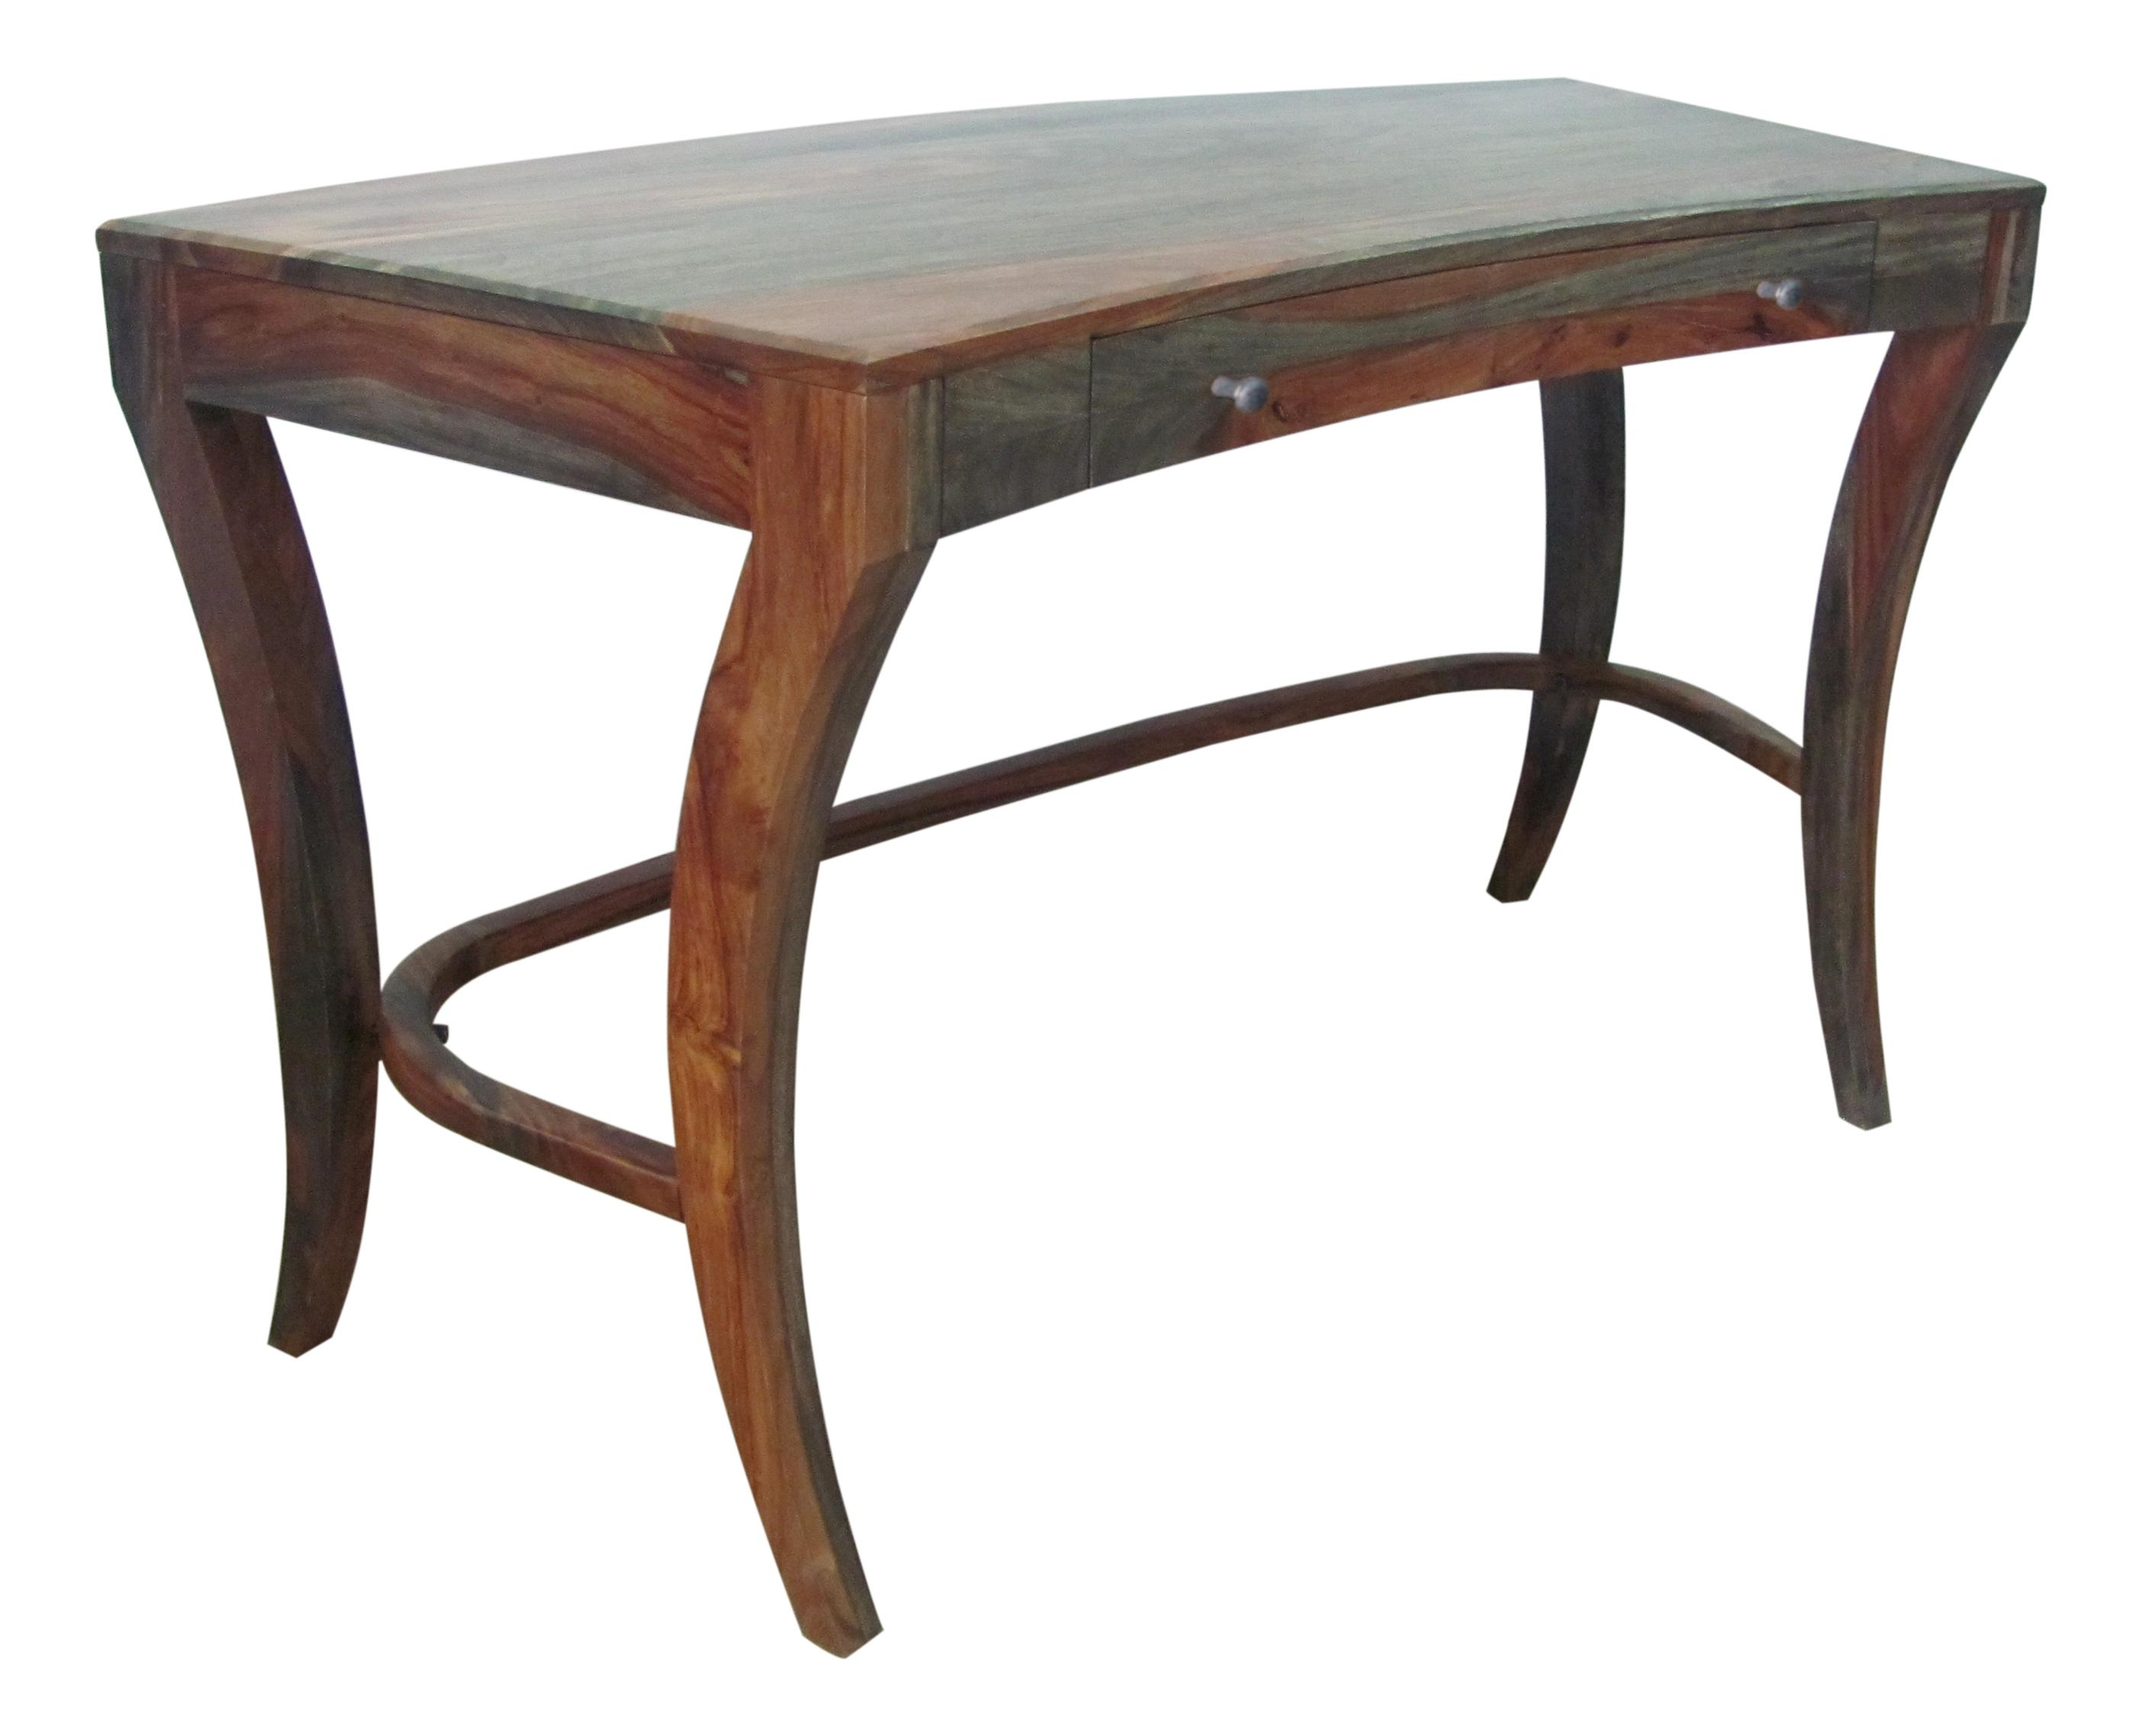 Marvelous photograph of  Grayson One Drawer Writing Desk Value City Furniture Table Desk with #6B4535 color and 2806x2274 pixels